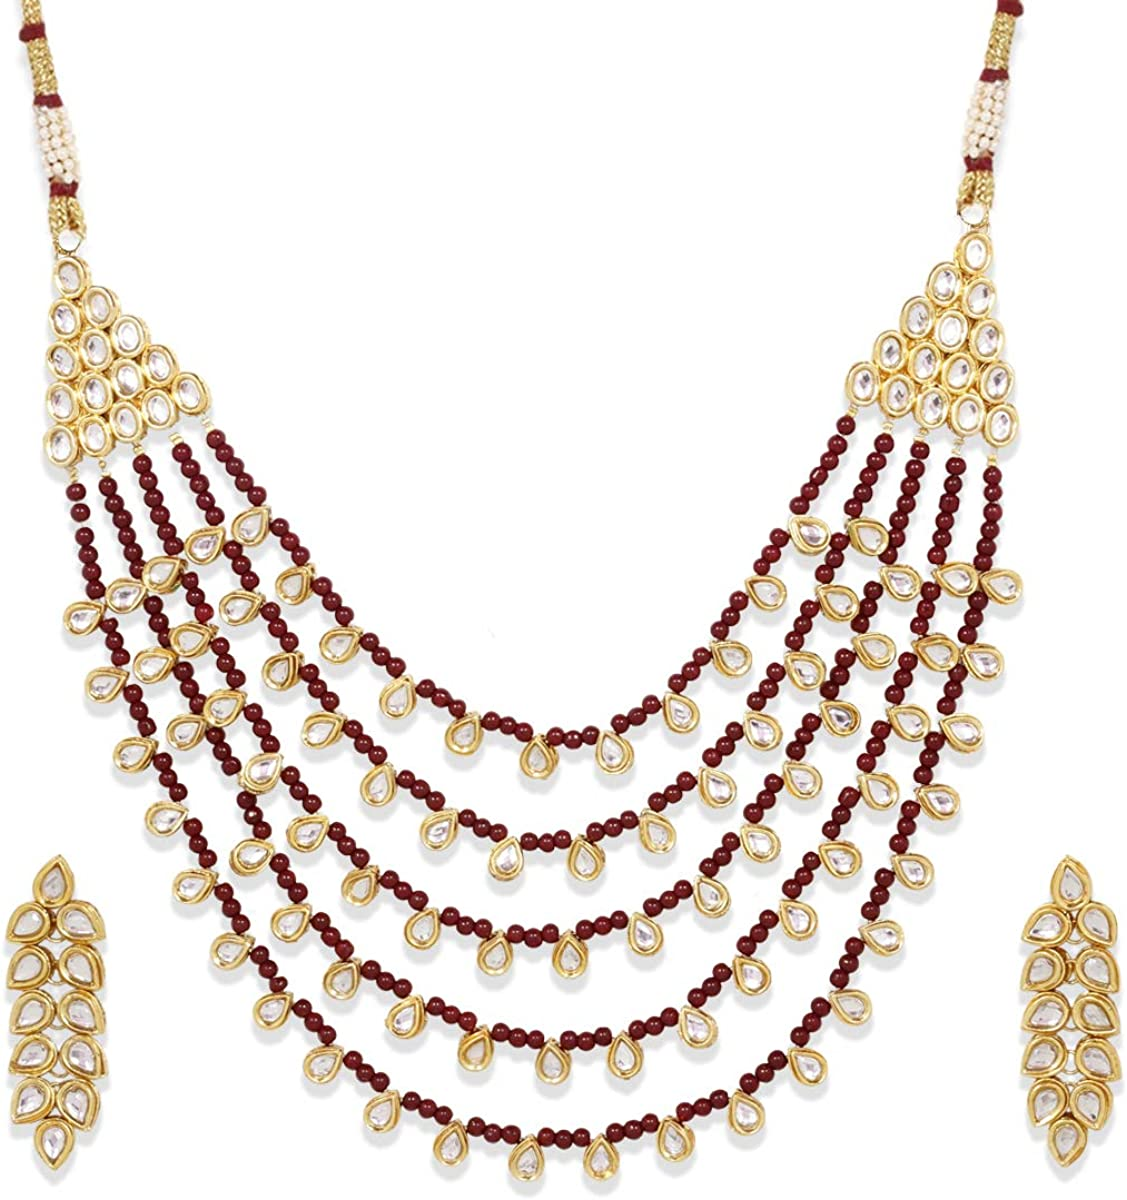 Maroon Pearl Ethnic Indian Traditional Gold Plated Wedding Party Wear Necklace Earrings Jewelry Set